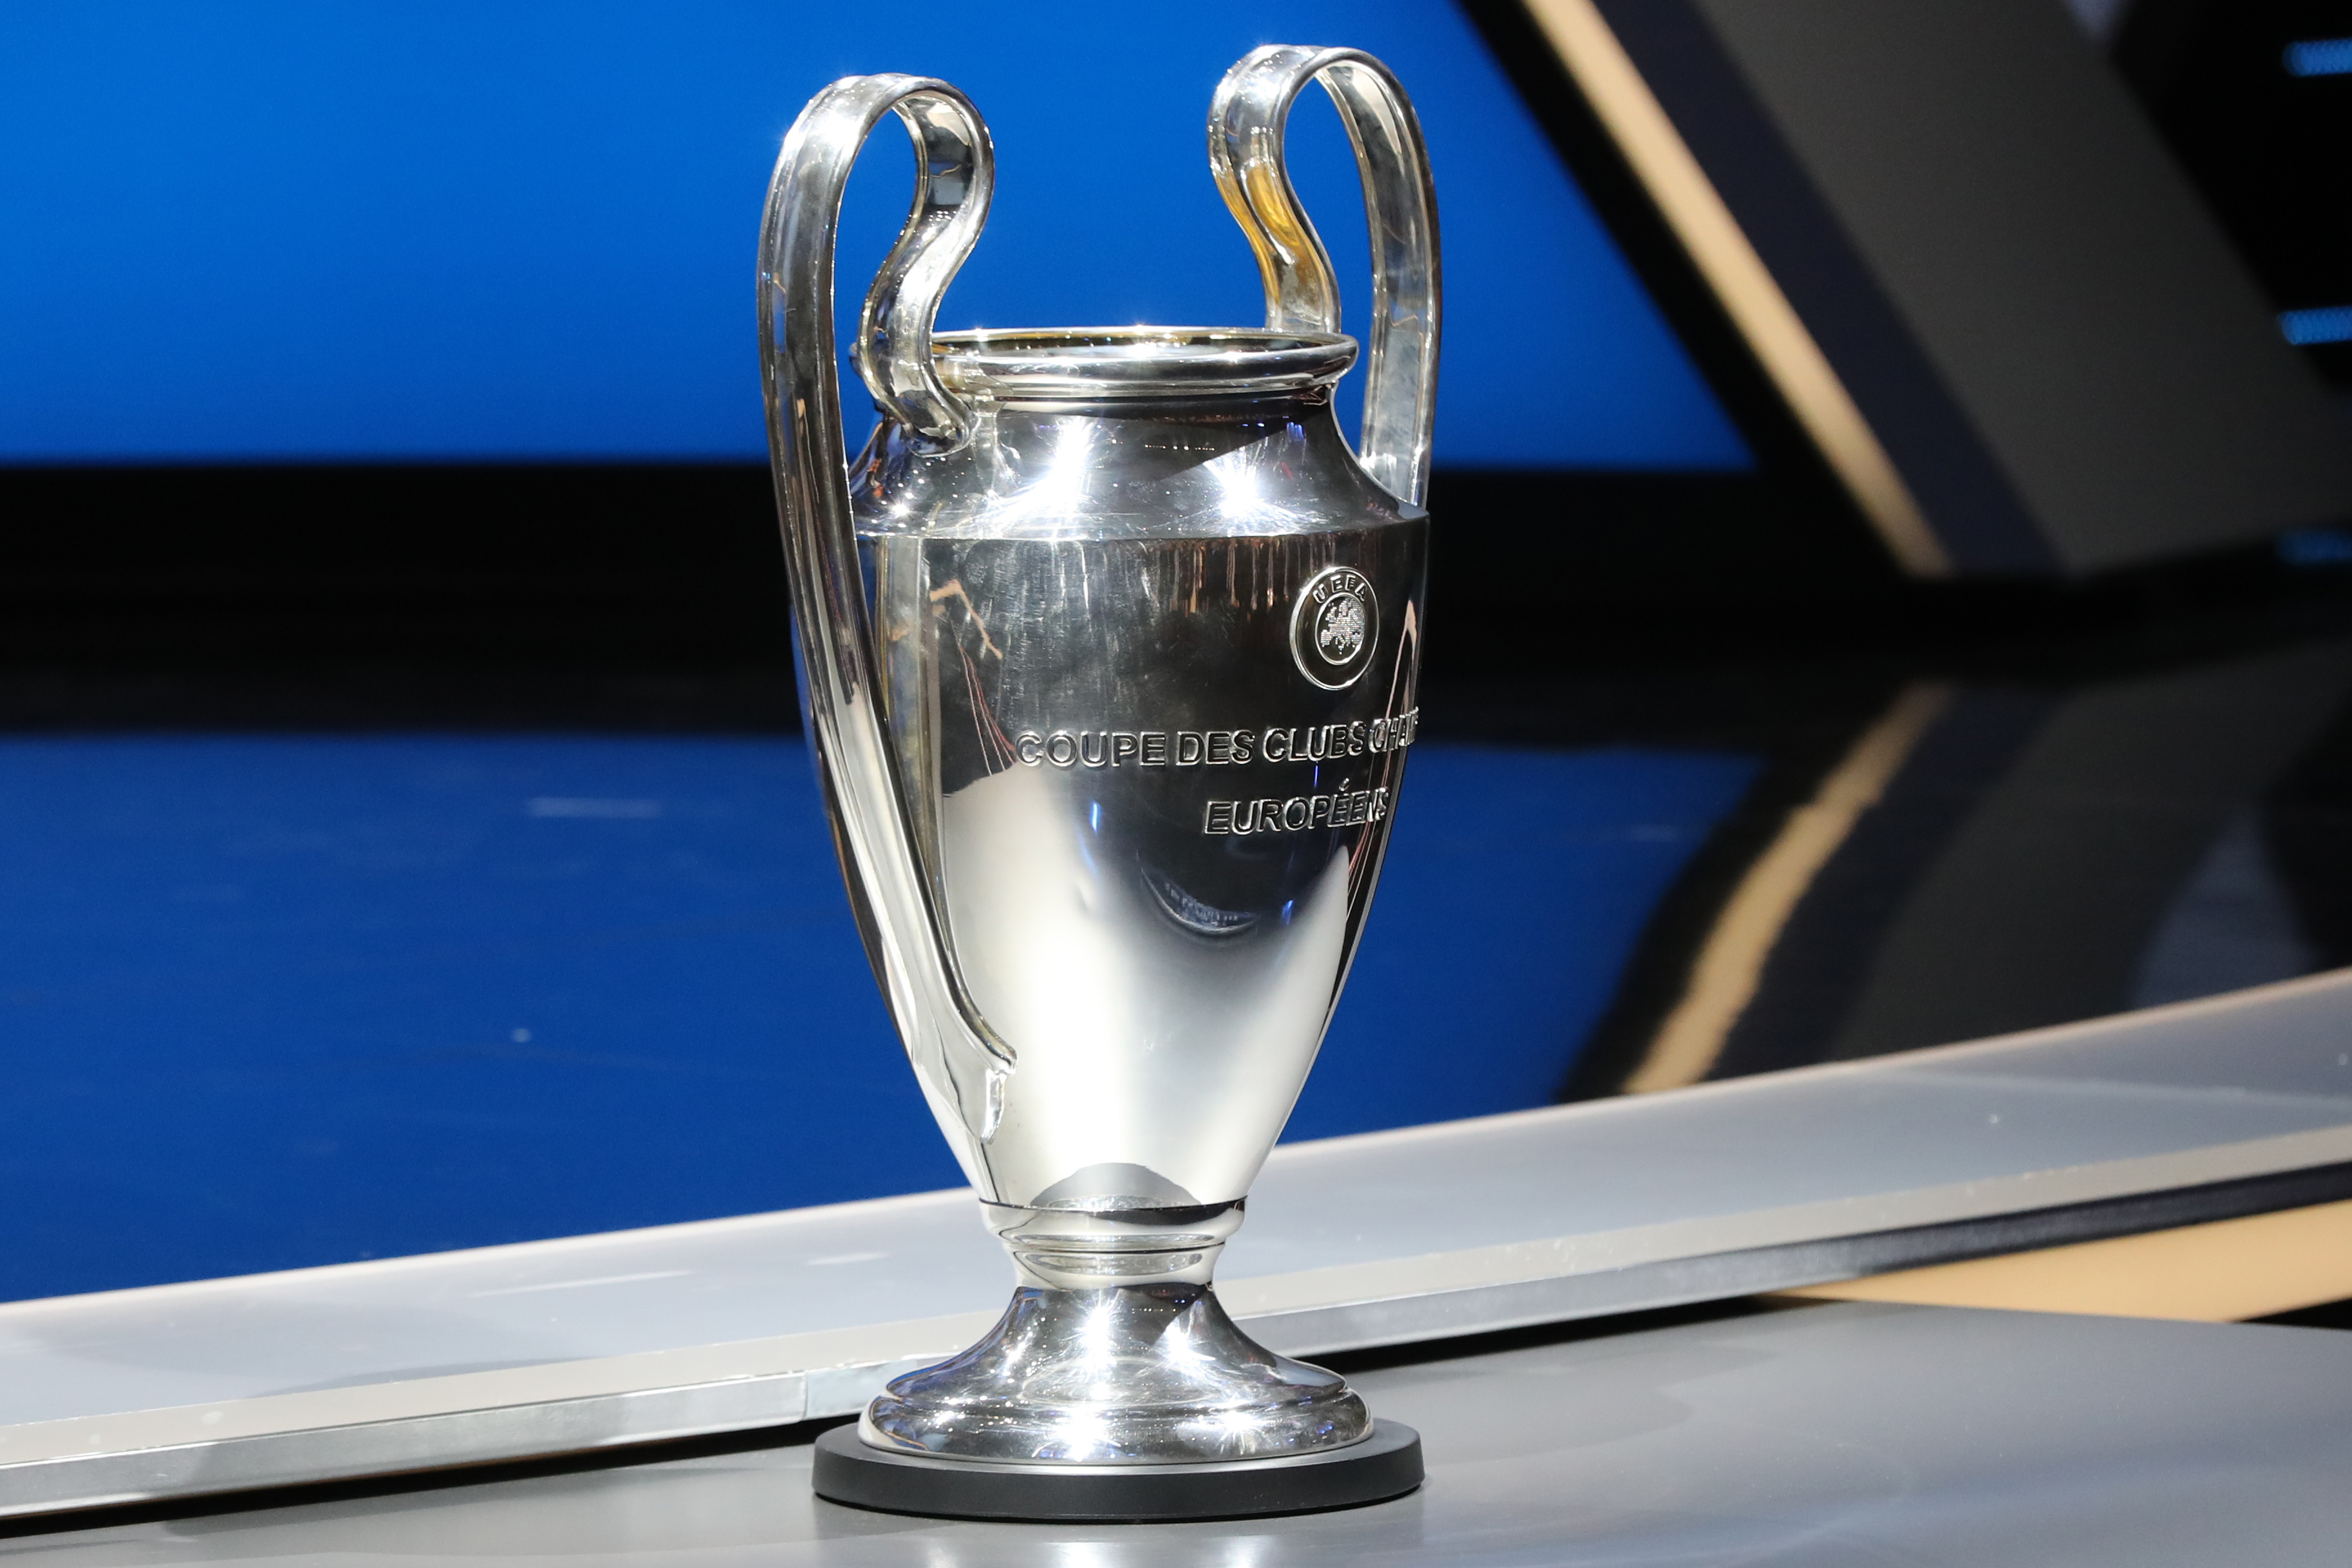 The Champions League trophy is pictured at the start of the UEFA Champions League Group stage draw ceremony, on August 25, 2016 in Monaco.  AFP PHOTO / VALERY HACHE / AFP / VALERY HACHE        (Photo credit should read VALERY HACHE/AFP/Getty Images)